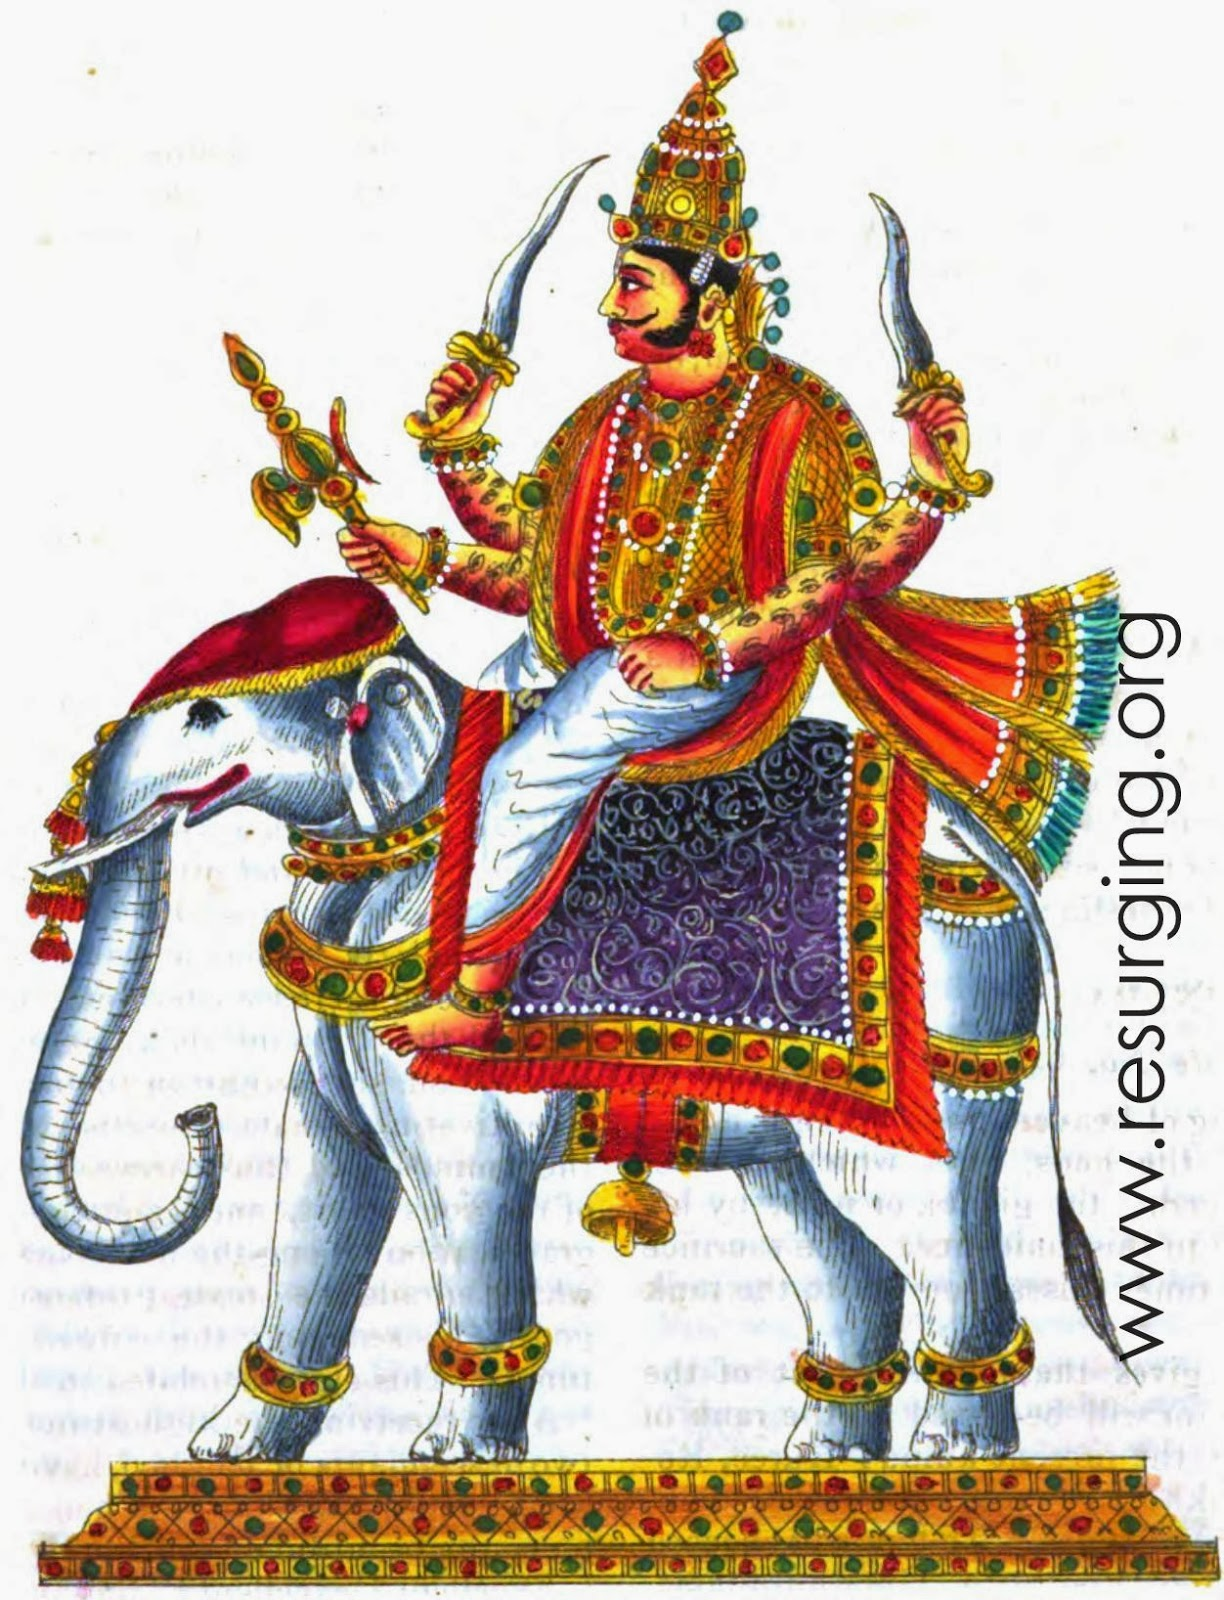 Lord Indra - Brief description about the king of Gods and also the